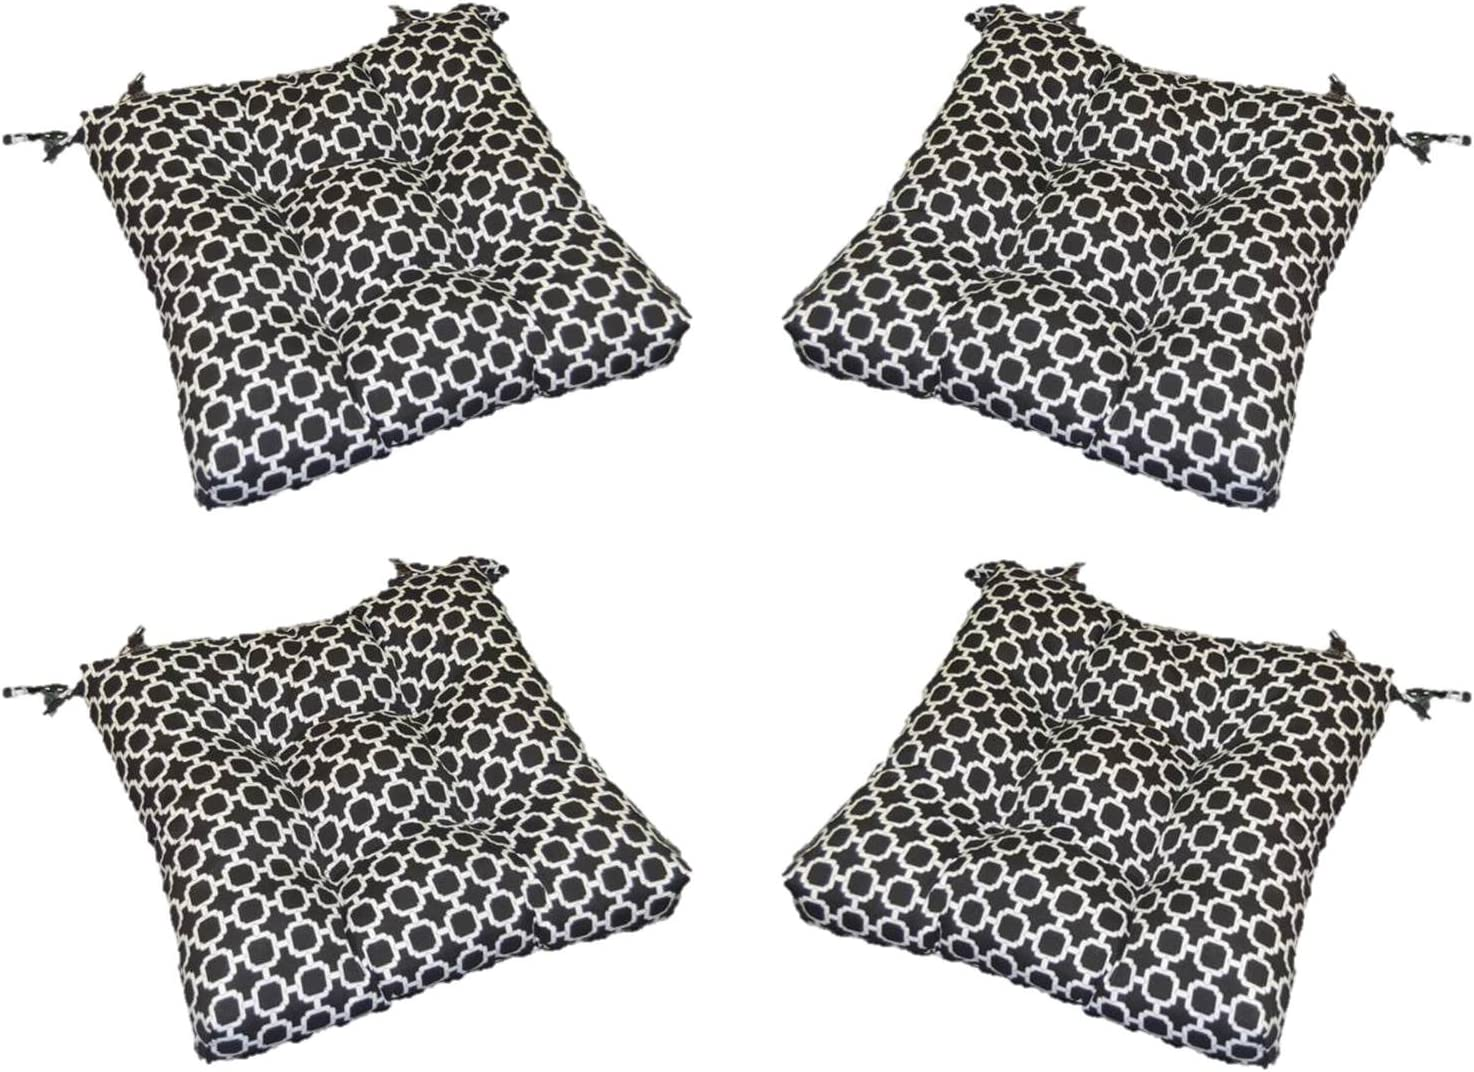 Resort Spa Home Decor Set of 4 – Indoor Outdoor Black White Geometric Hockley Universal Tufted Seat Cushions with Ties for Dining Patio Chairs – Choose Size 16 x 16